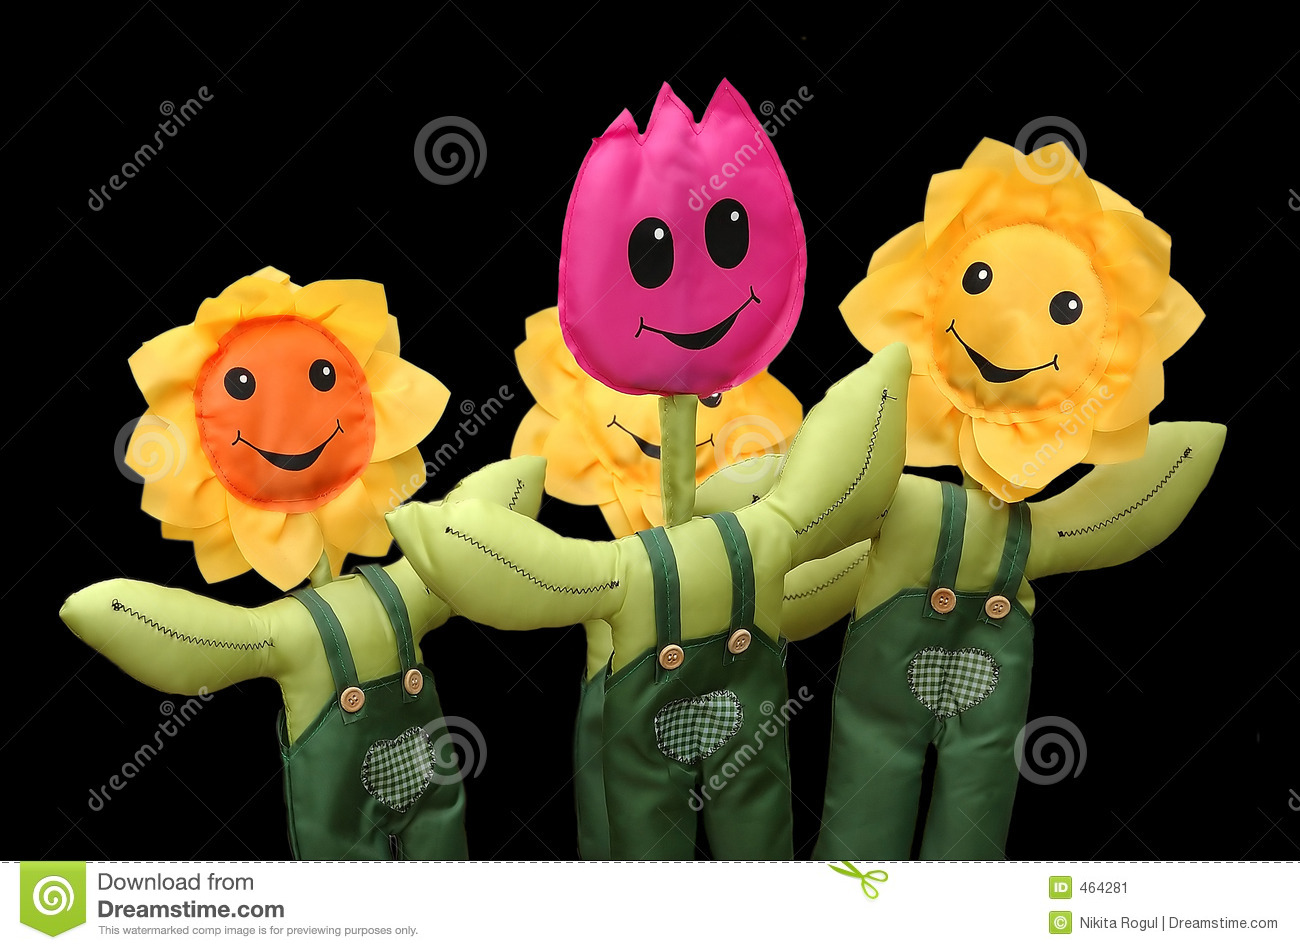 Download Toy flowers stock image. Image of smile, yellow, heart - 464281